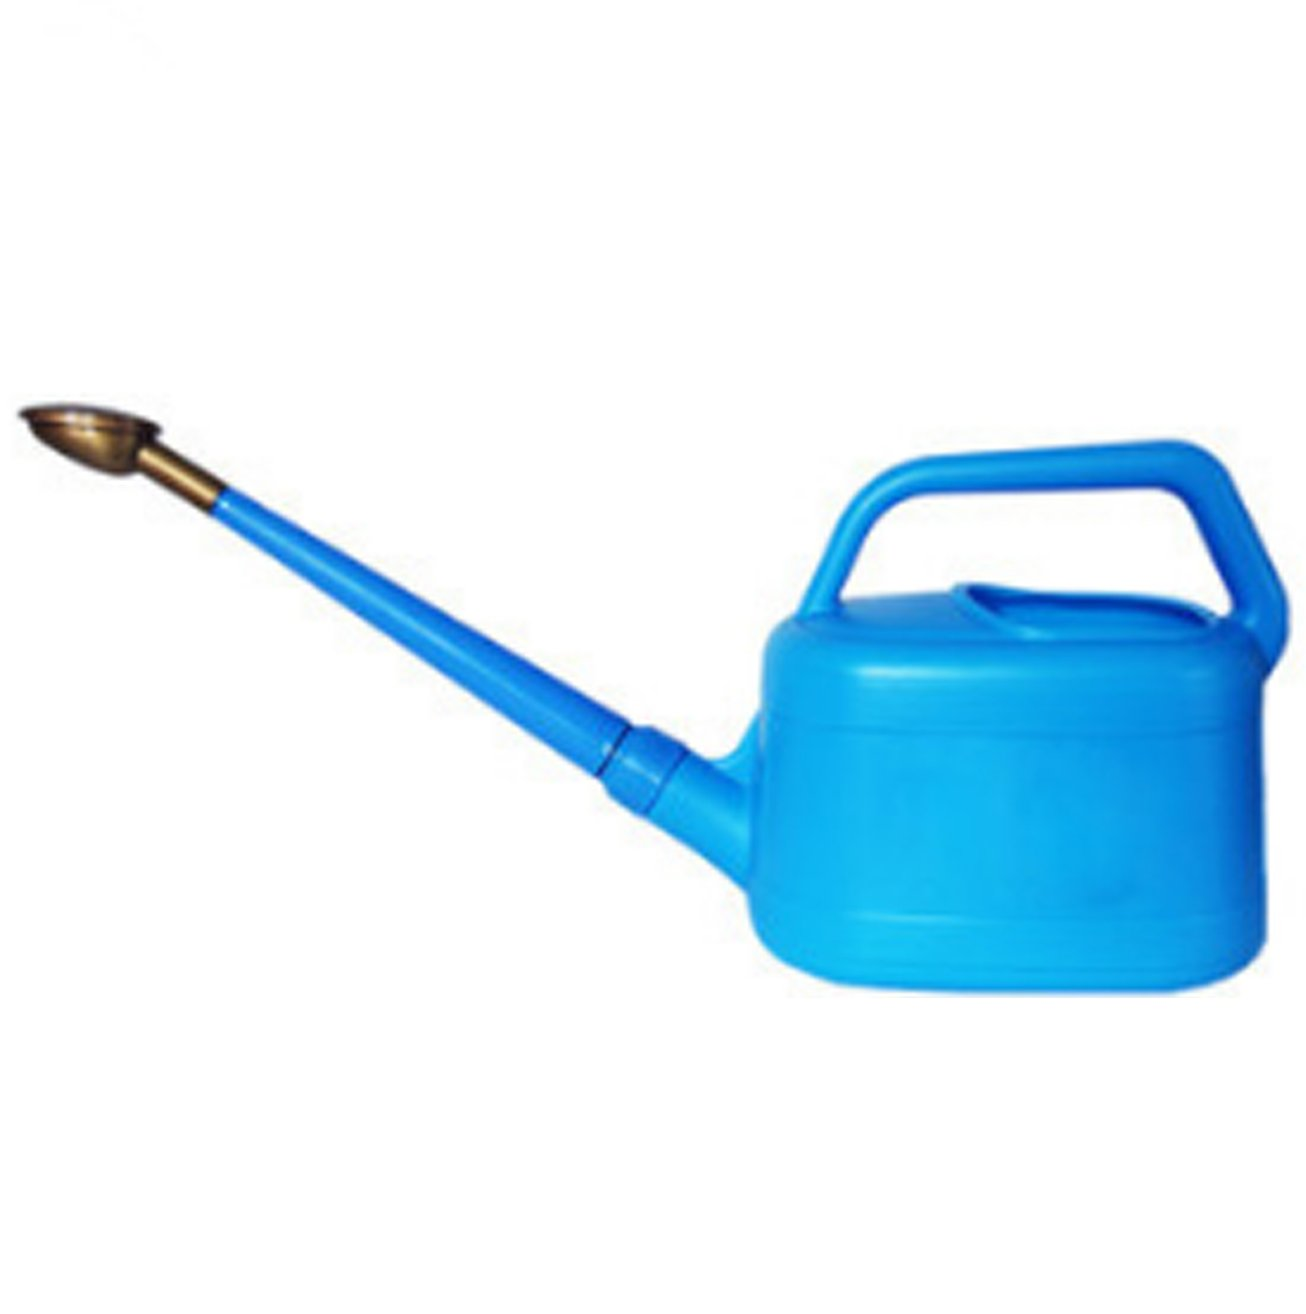 Layboo Premium High-Grade Plastic Watering Can Long Spout 3.3 L(360 Degree Rotation Shower Head)